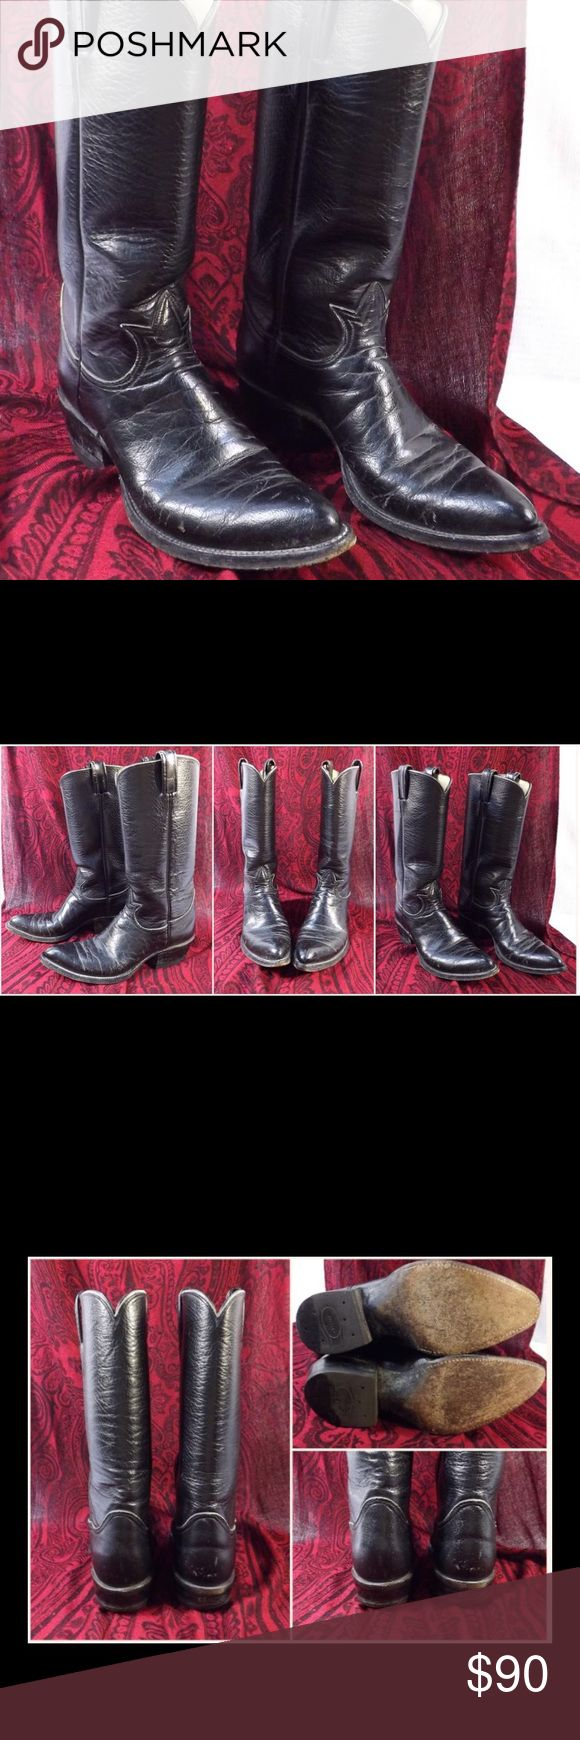 Tony Lama Black Leather Women's Cowgirl Boots Tony Lama Black Leather Women's Cowgirl Boots.  Kick up your heels for a night on the town in these stylish black leather cowgirl boots.  The perfect accessory for any outfit.  Retail $300. Tony Lama Shoes Combat & Moto Boots